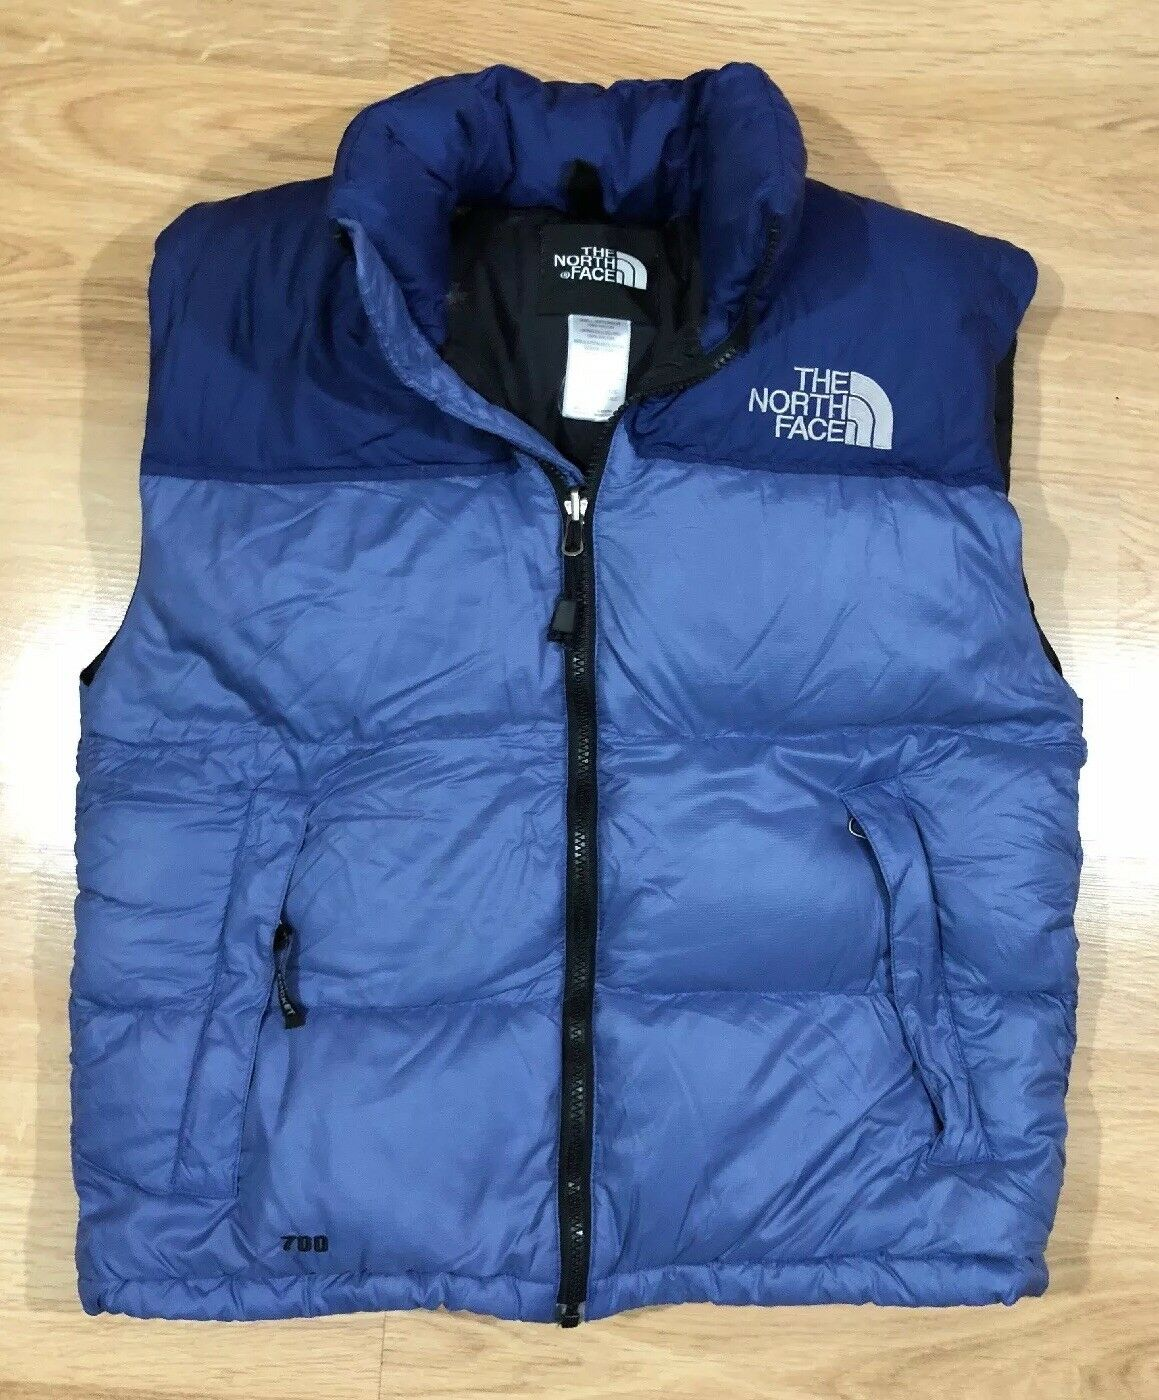 Womens NORTH FACE Down 700 Vest Size Small bluee Warm